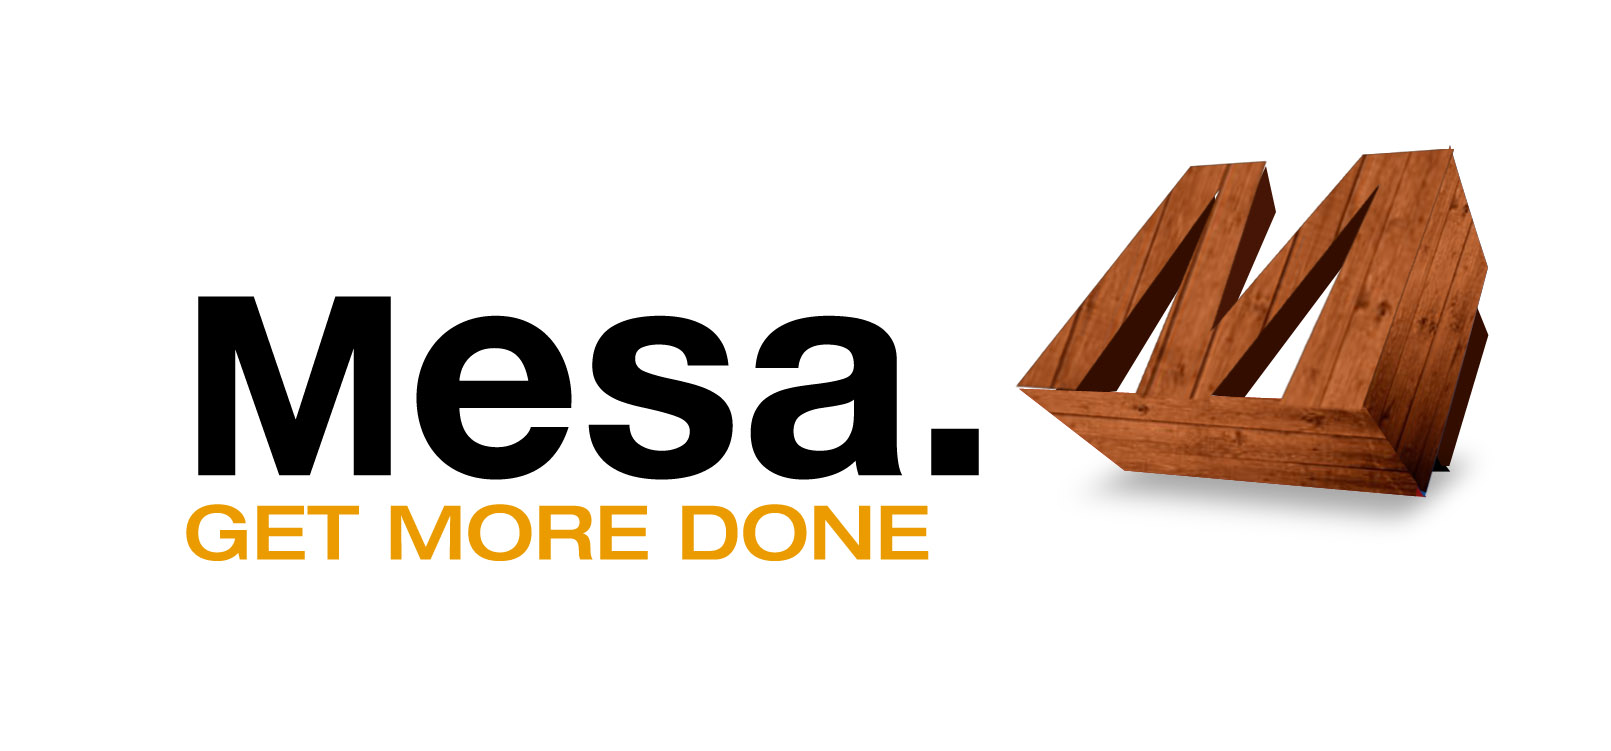 Logo Design by Lama Creative - Entry No. 77 in the Logo Design Contest Logo Design for Mesa.